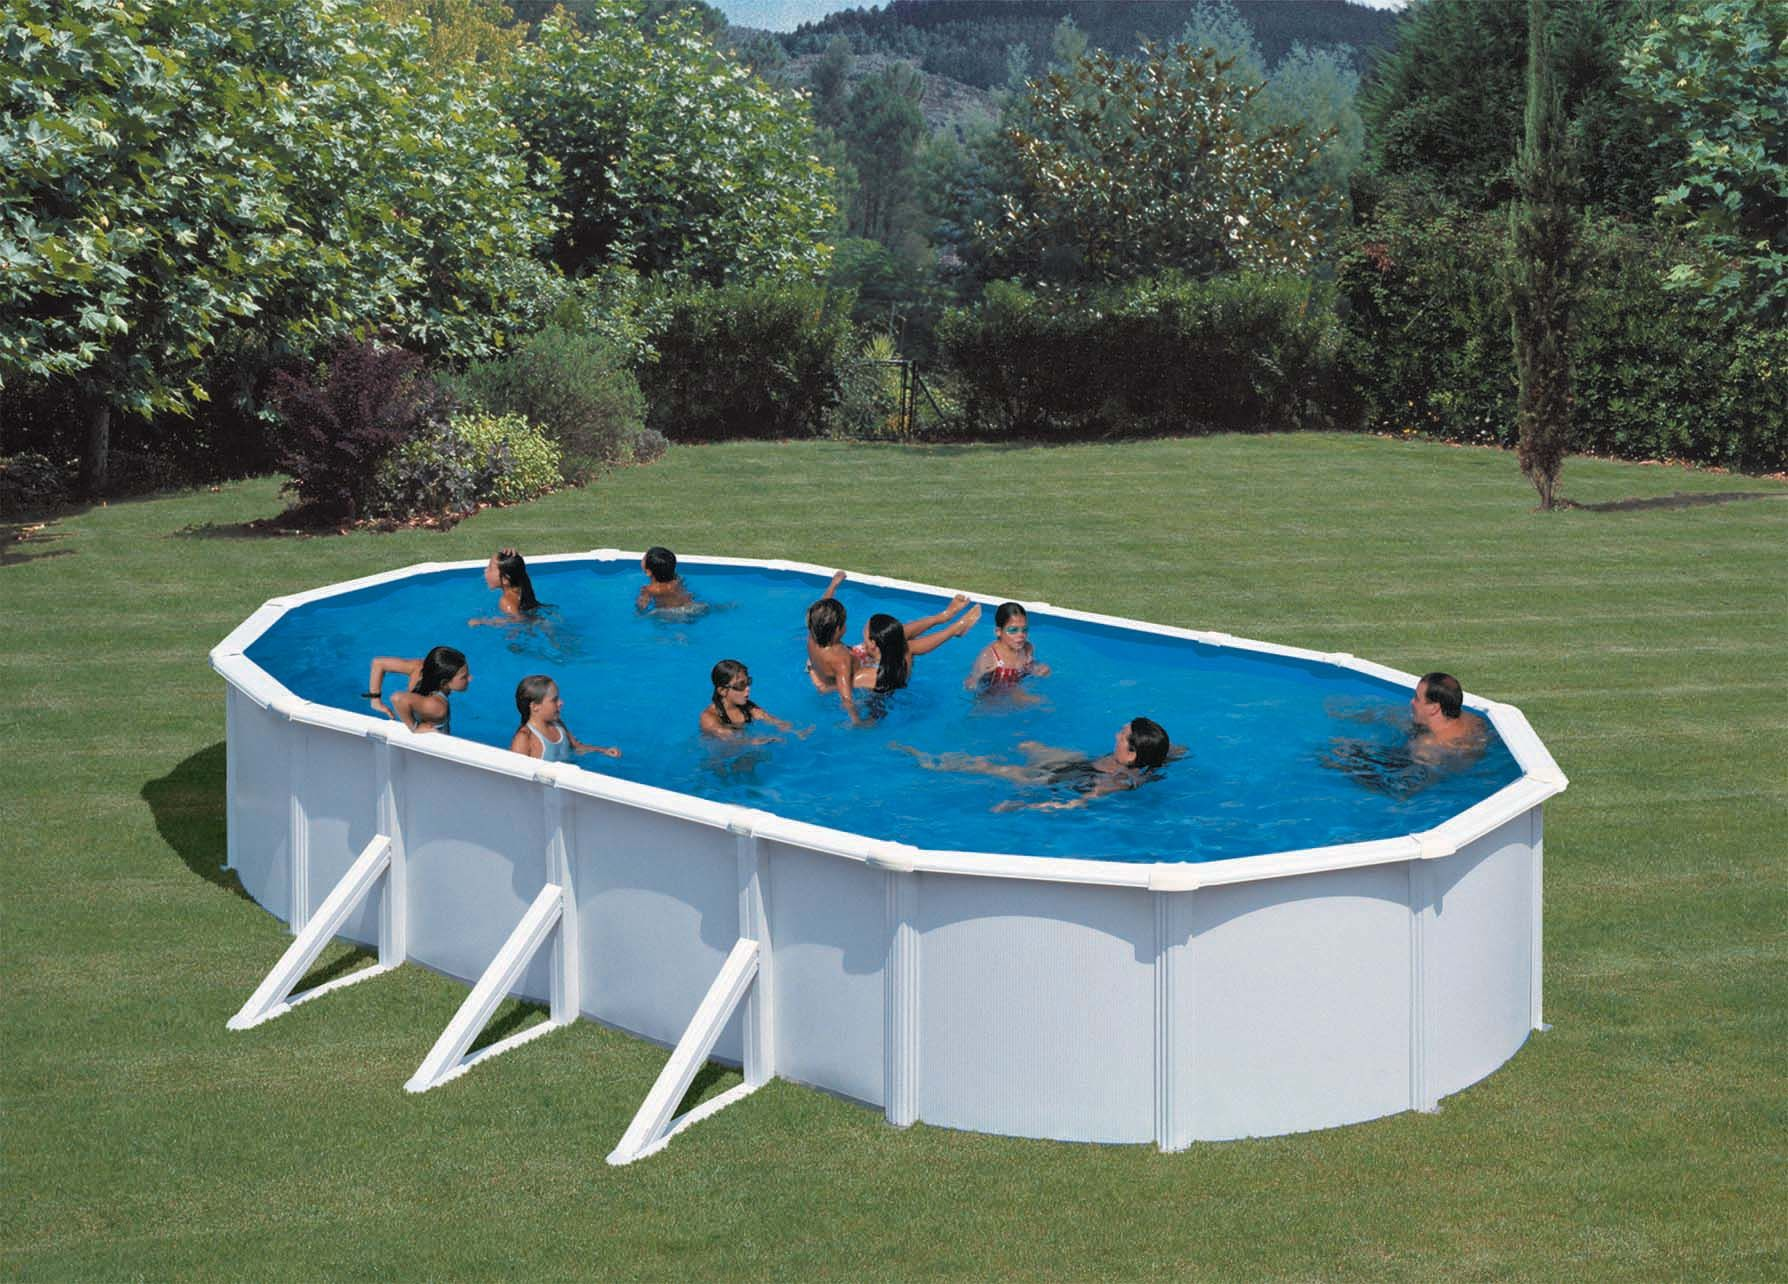 Pool Garten Lustig Pools Oval Steel Pool 730 X 375cm Our Deluxe Gre Steel Pools